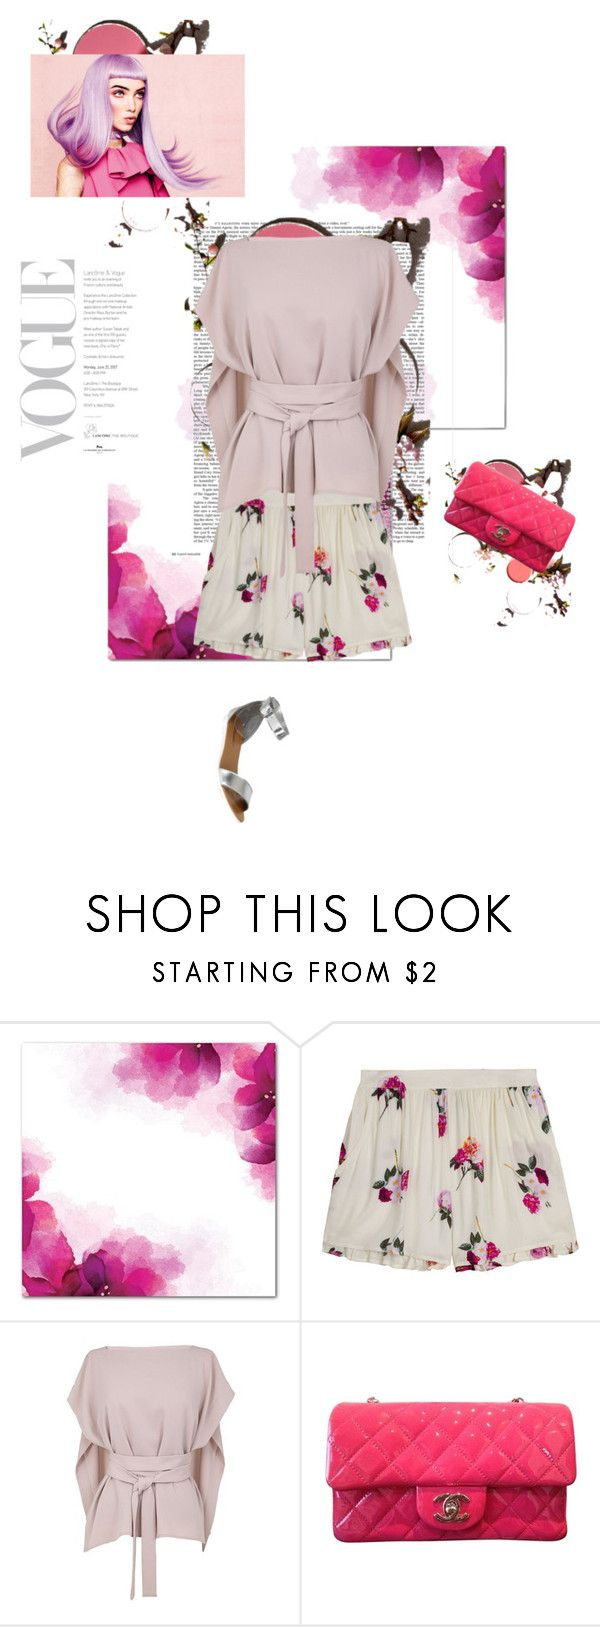 """""""Candy & Flowers - Yes, Please!"""" by aclaire ❤ liked on Polyvore featuring MINKPINK, TIBI, Chanel and Breckelle's"""